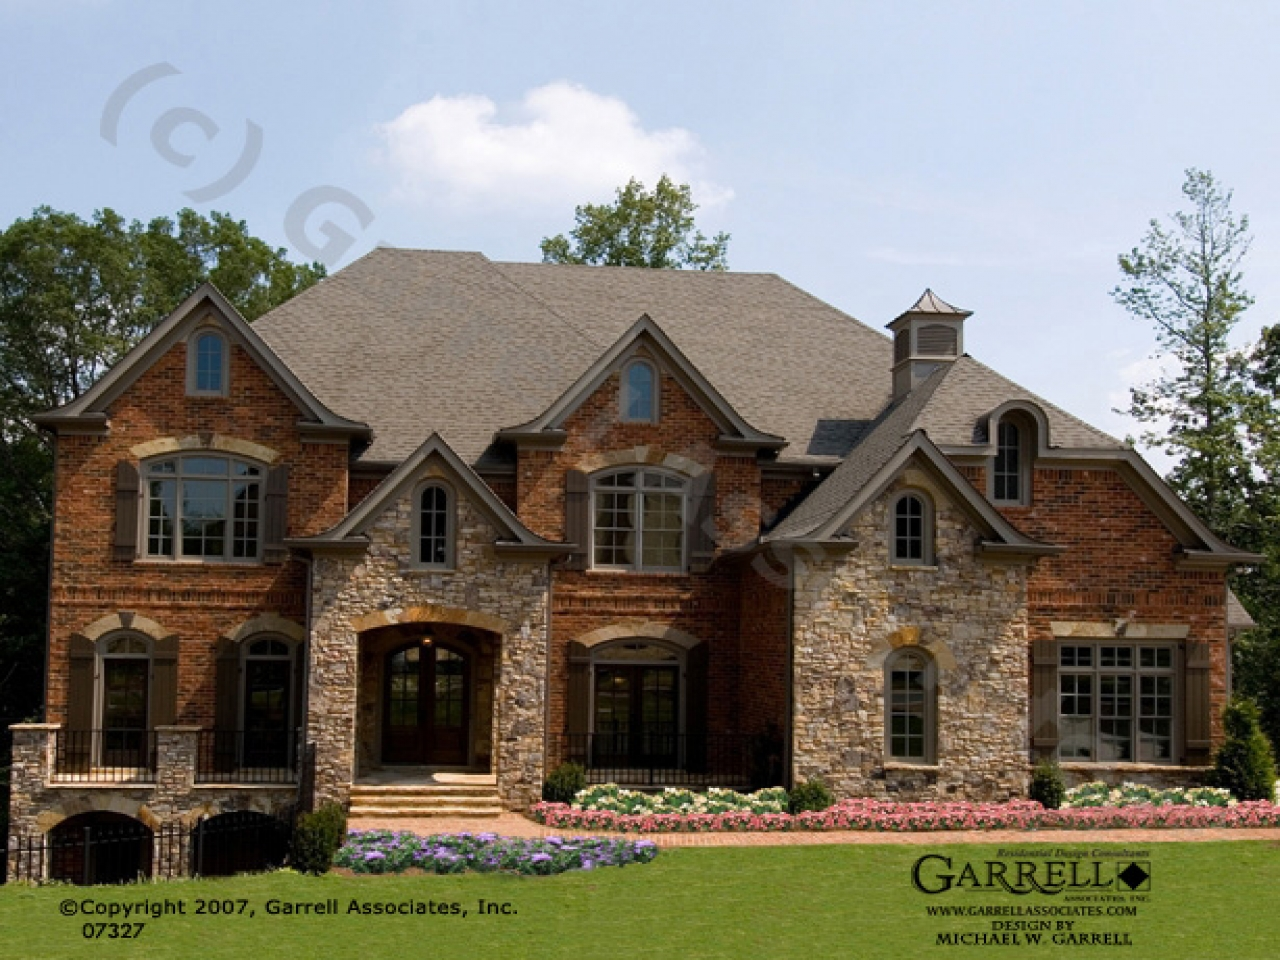 Brick And Stone Exterior Combinations Brick And Stone Exteriors Homes Brick And Stone House Plans